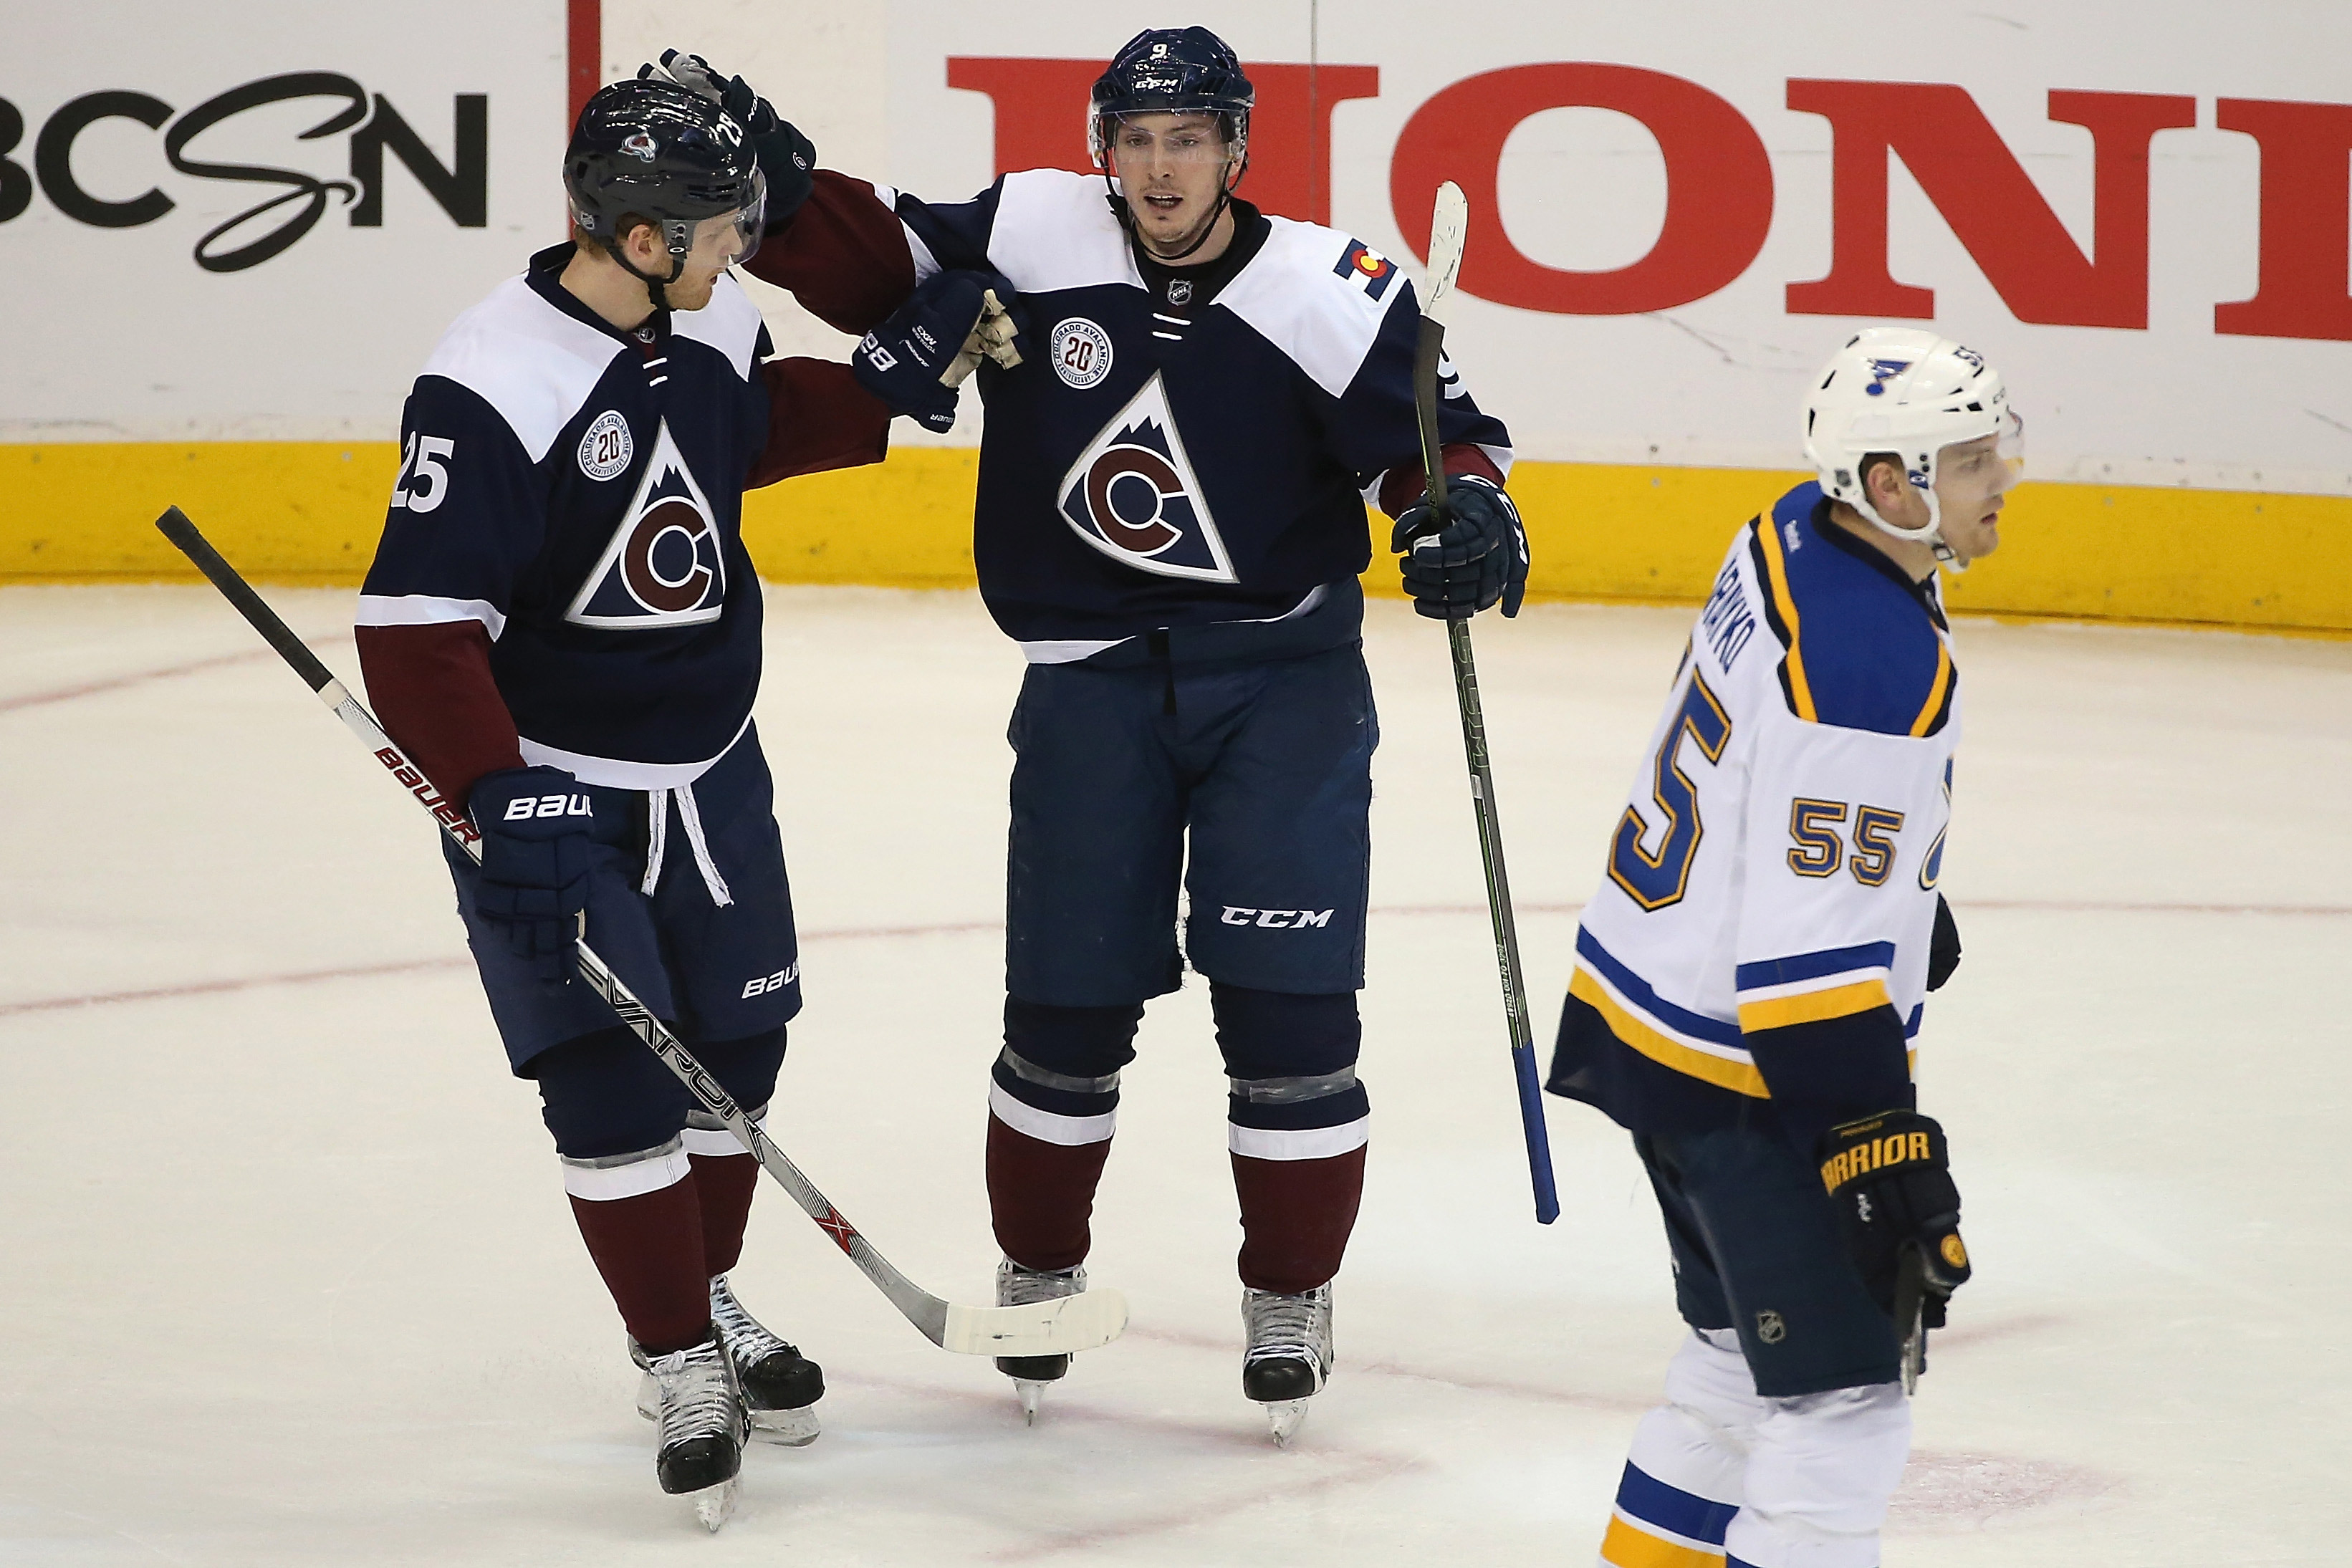 Matt Duchene #9 of the Colorado Avalanche celebrates his goal against the St. Louis Blues with Mikhail Grigorenko #25 of the Colorado Avalanche as Colton Parayko #55 of the St. Louis Blues skates to the bench at Pepsi Center on April 3, 2016 in Denver, Colorado. The Blues defeated the Avalanche 5-1. (Photo by Doug Pensinger/Getty Images)